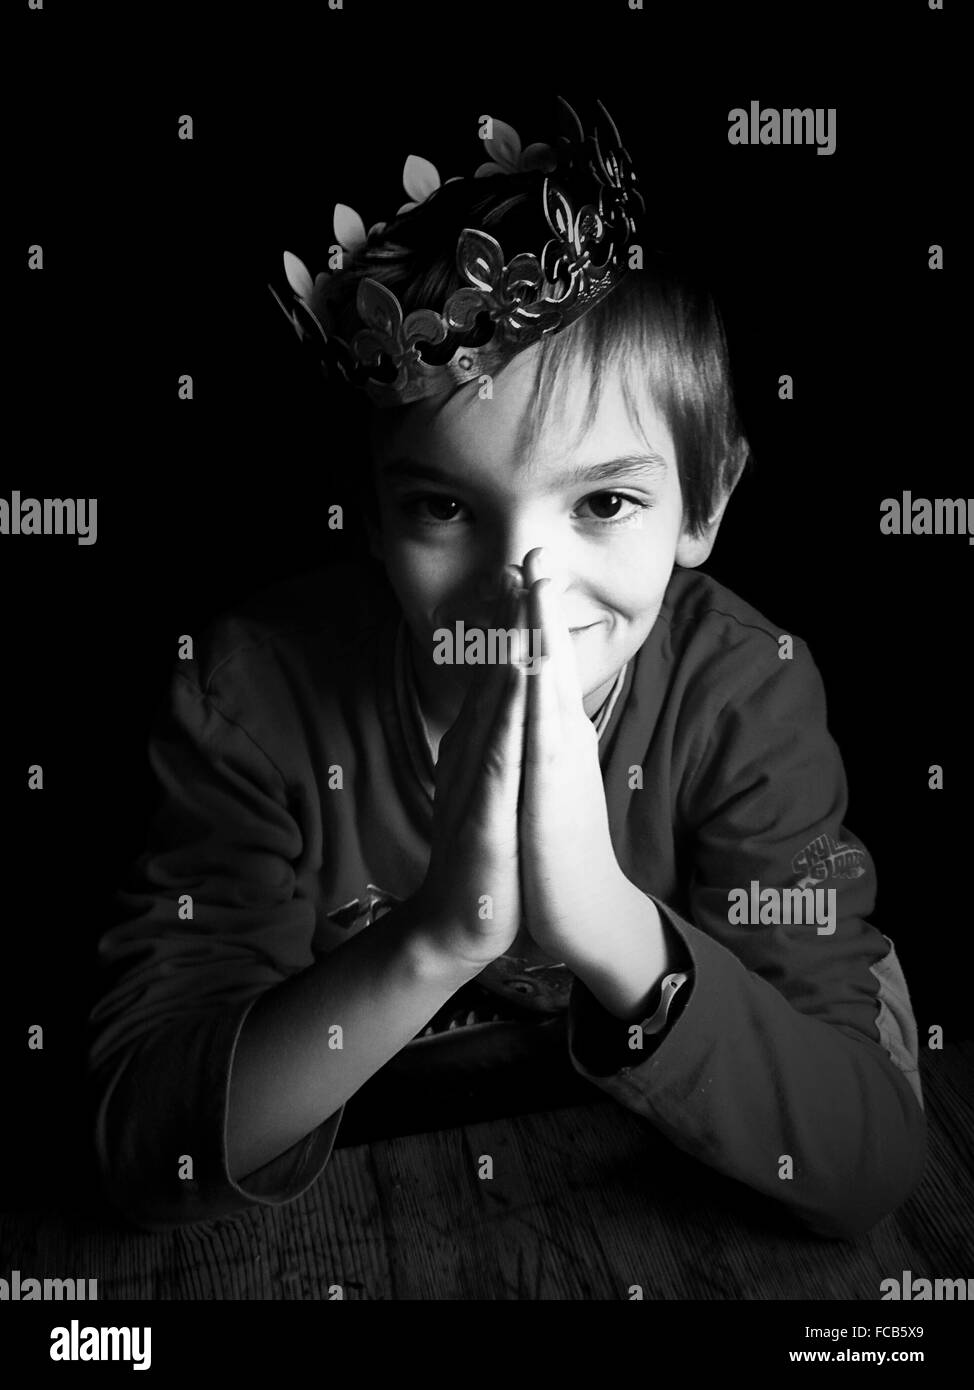 Portrait Of Boy Wearing Crown - Stock Image